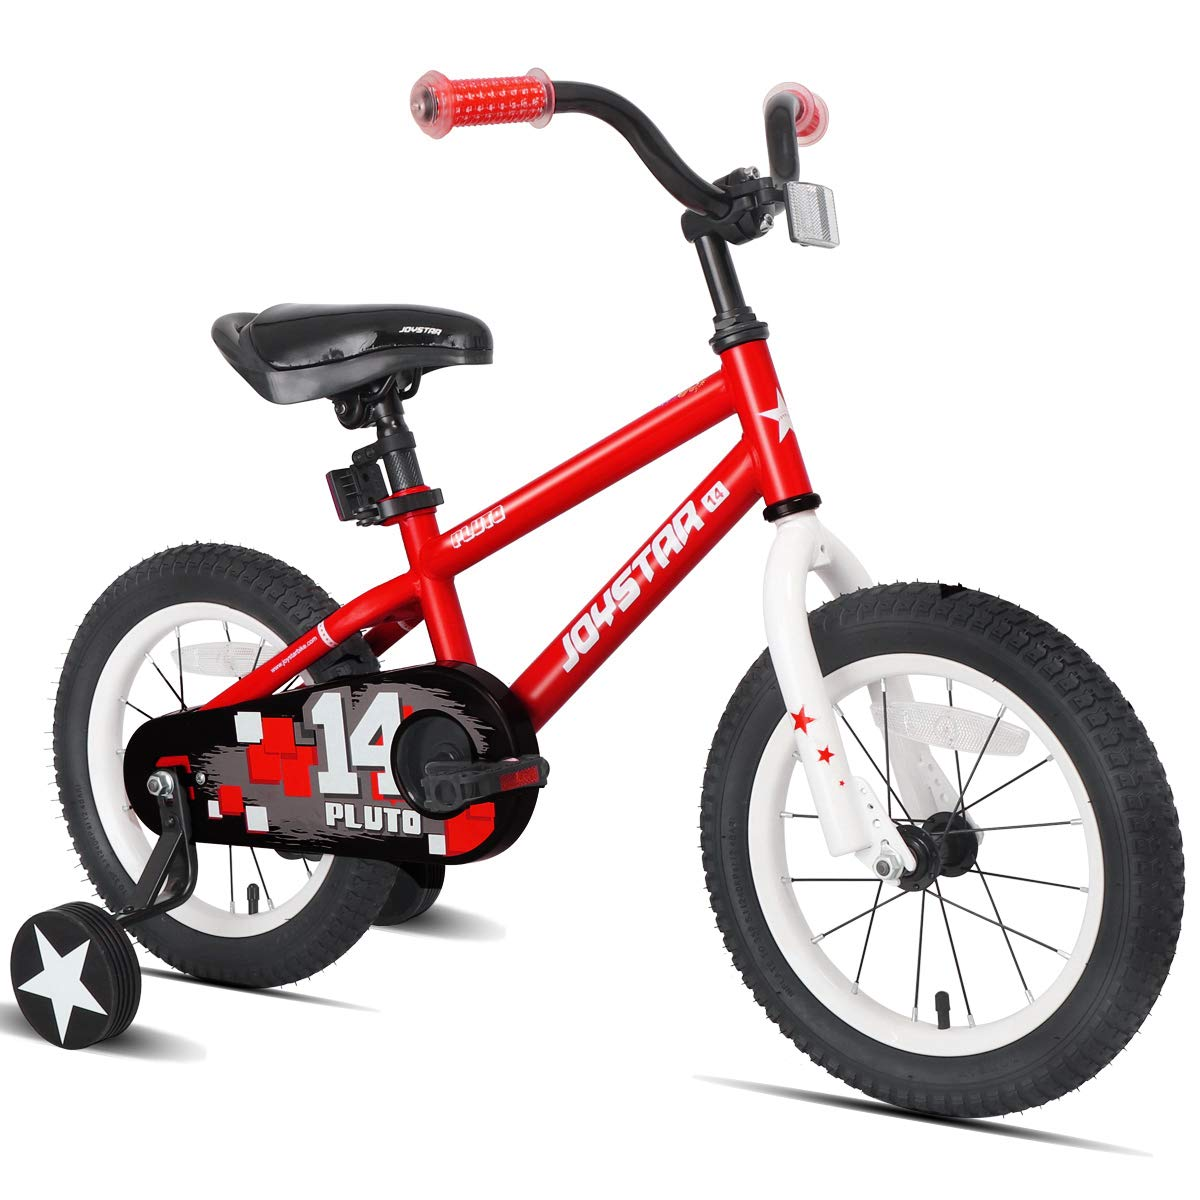 JOYSTAR 12'' Pluto Kids Bike with Training Wheels for 2 3 4 Year Old Boys & Girls, Unisex Kids Bicycle, Pedal Cycle for Toddlers, Red by JOYSTAR (Image #1)